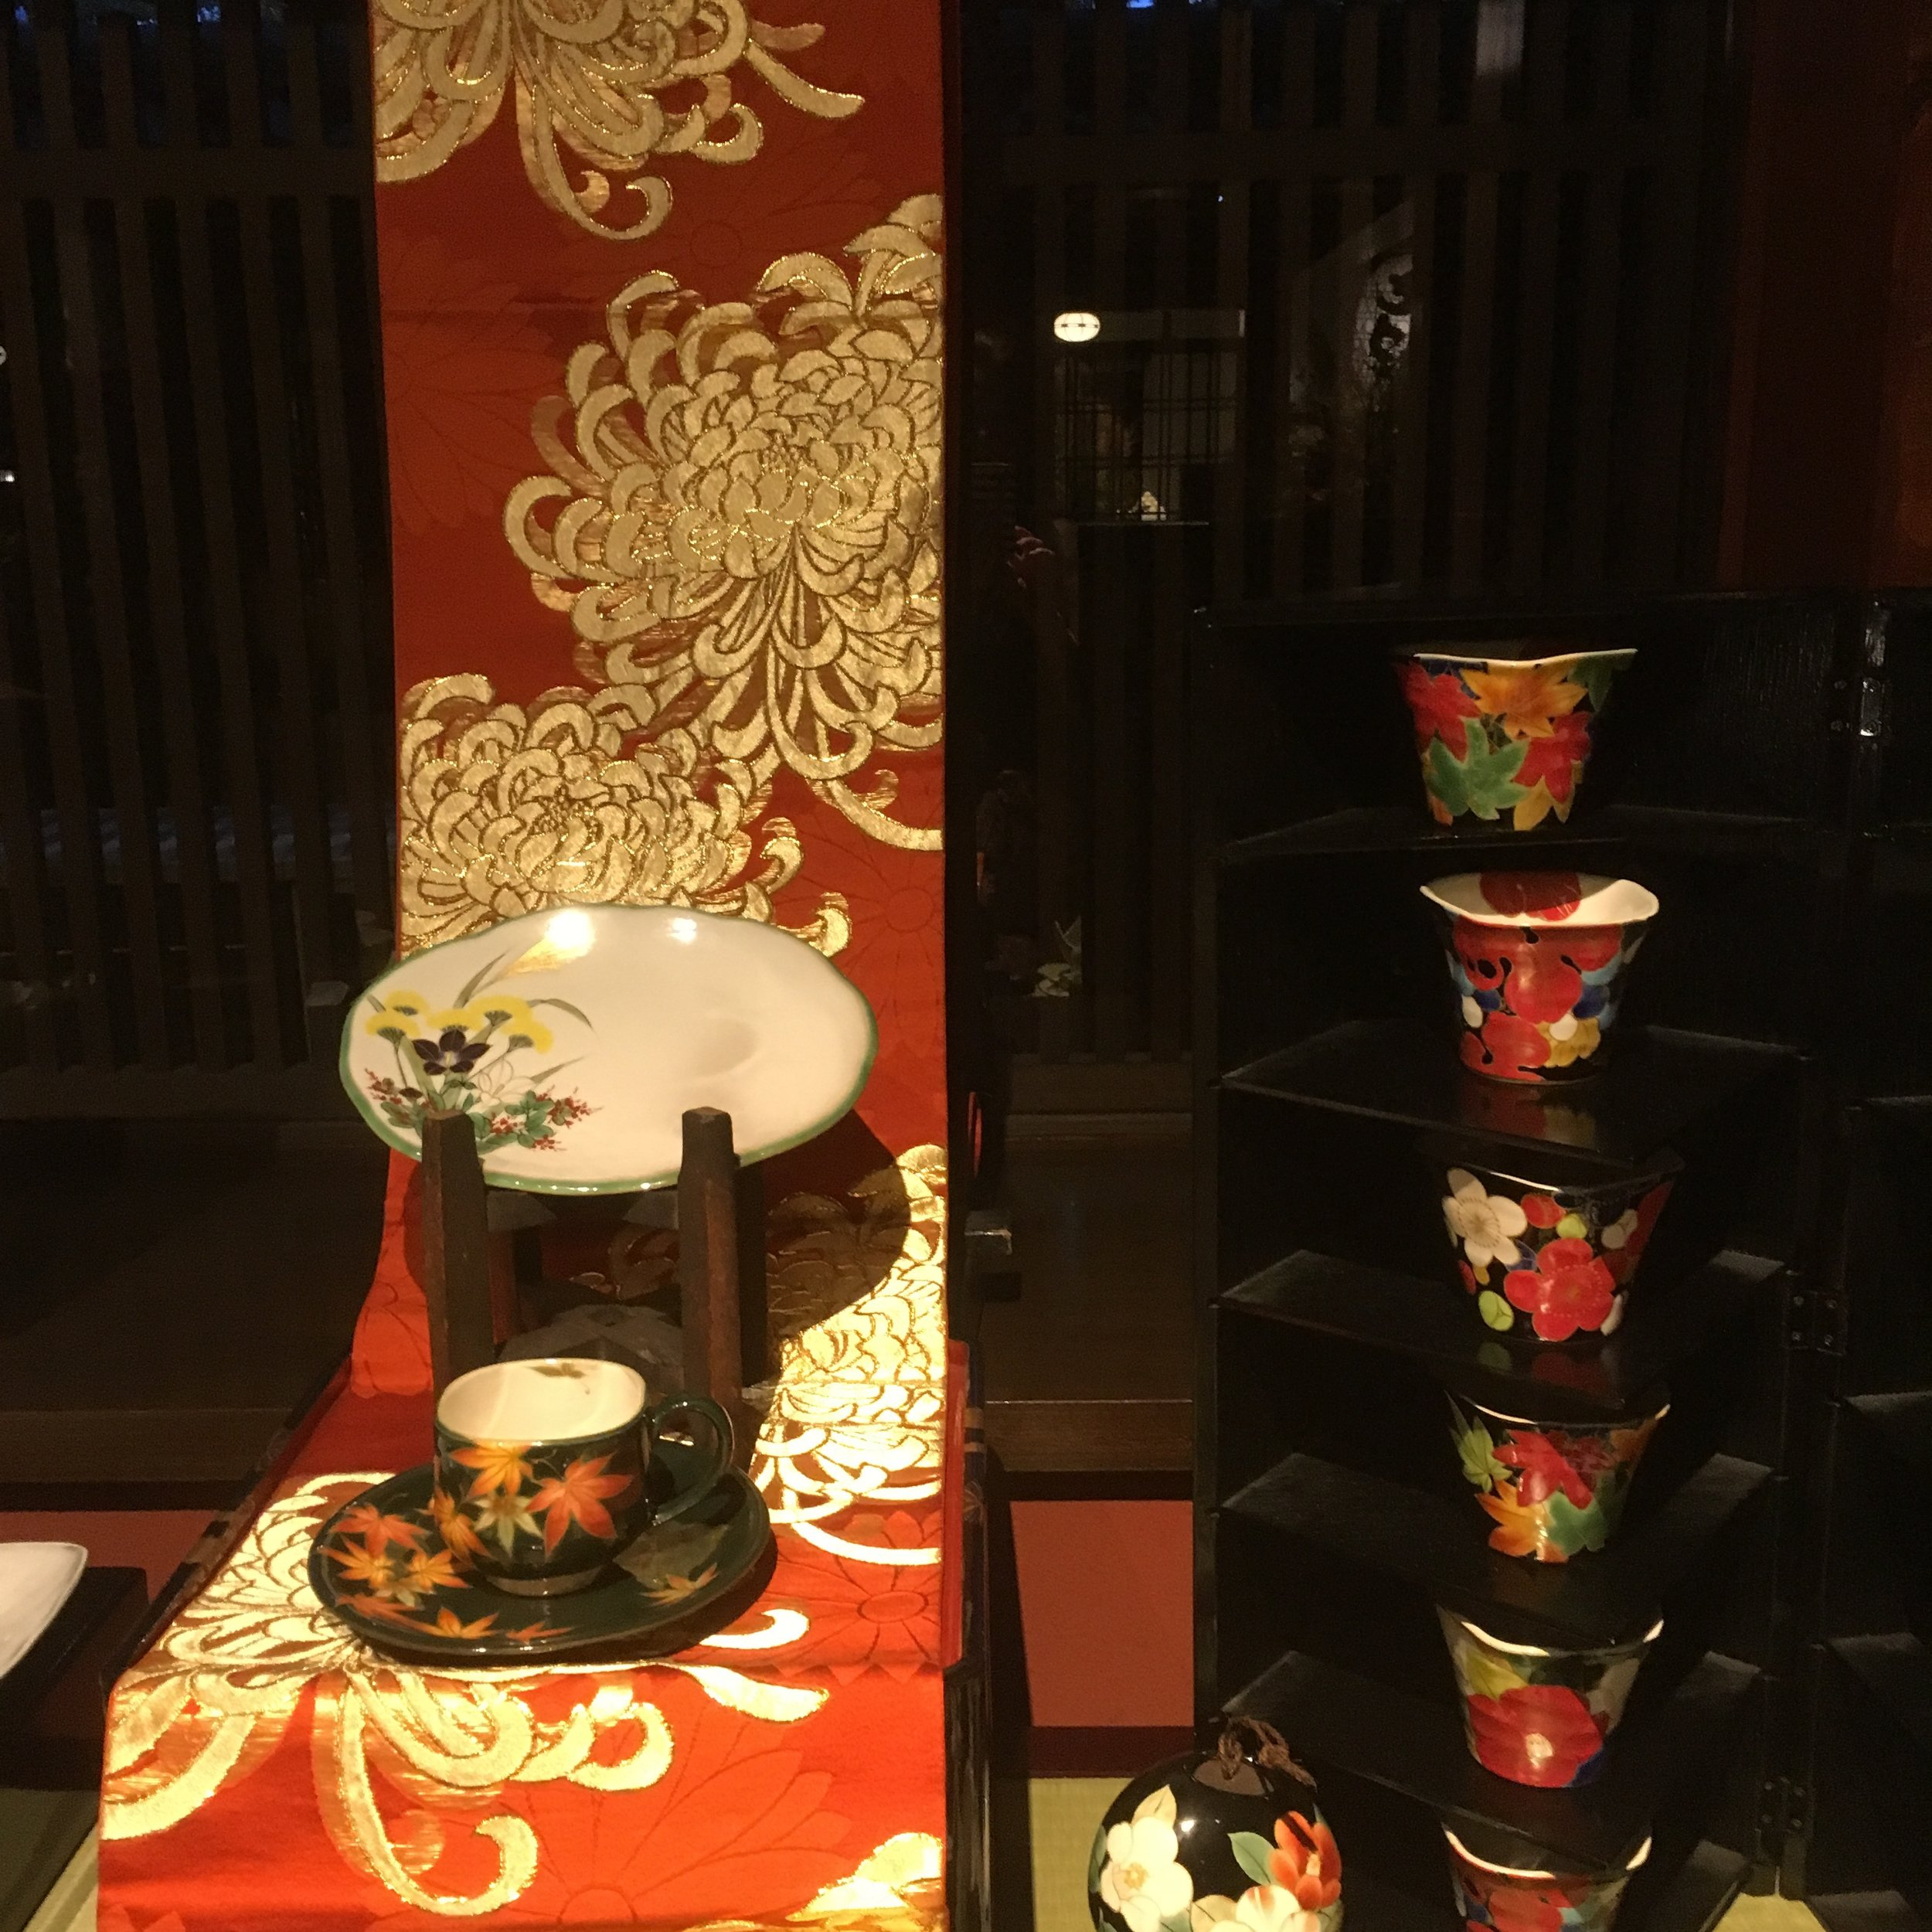 Autumn themed tableware on display